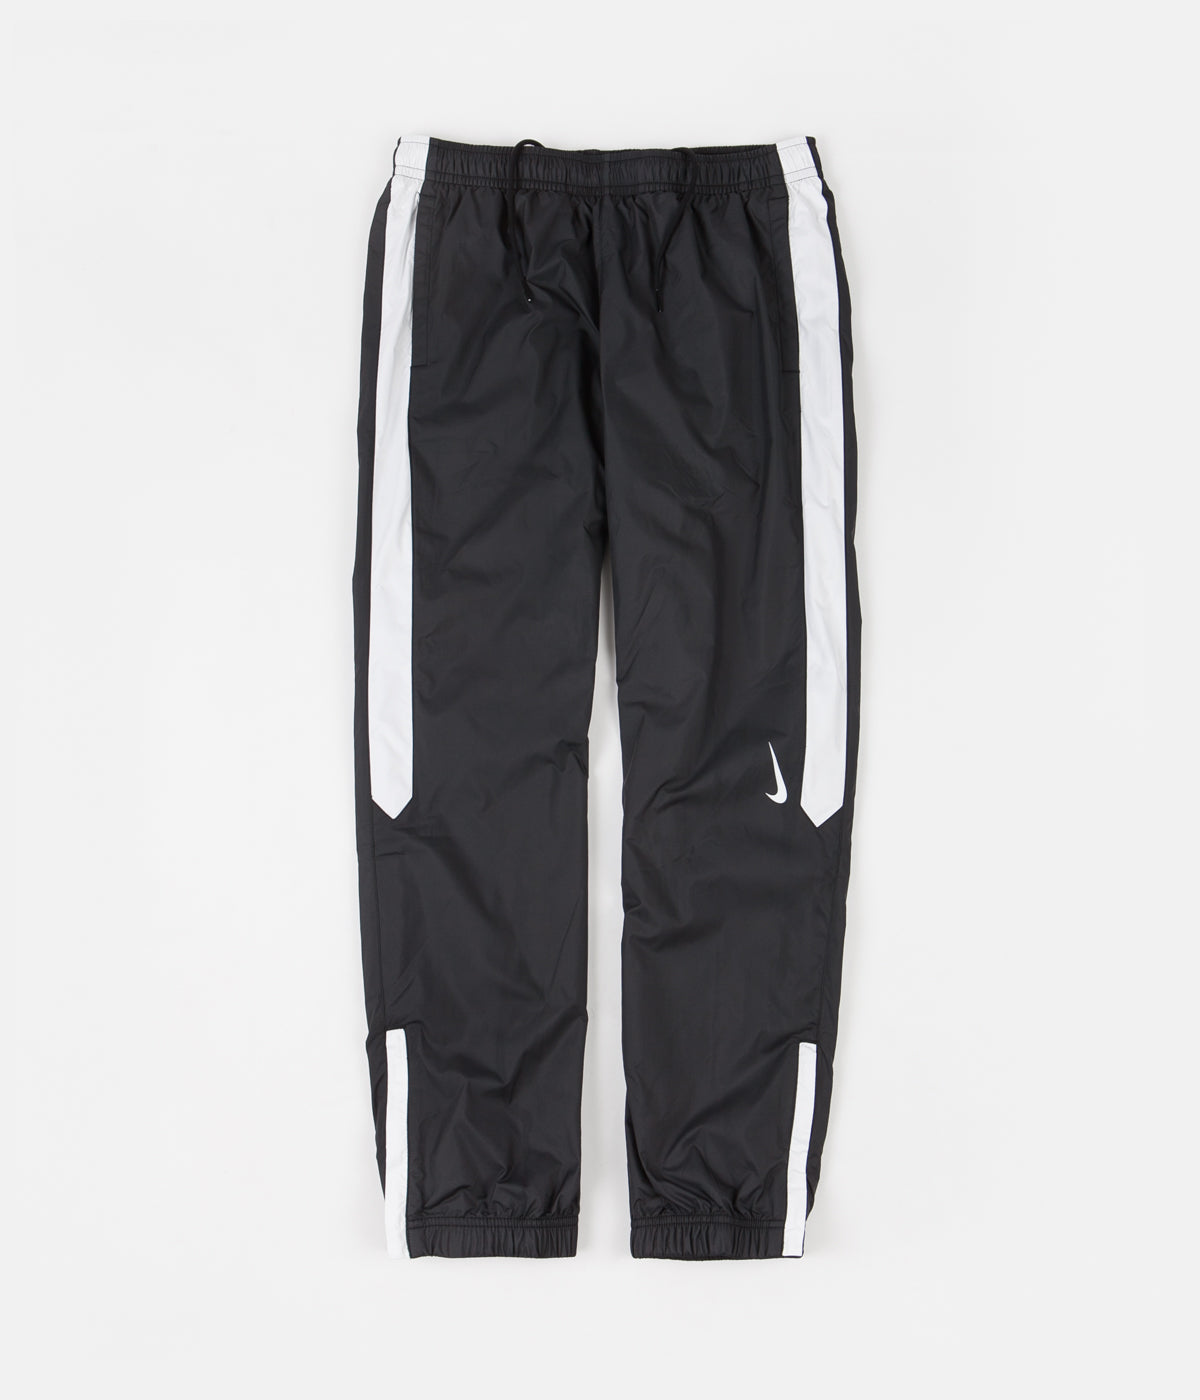 Nike SB Shield Swoosh Track Pants - Black / White / White